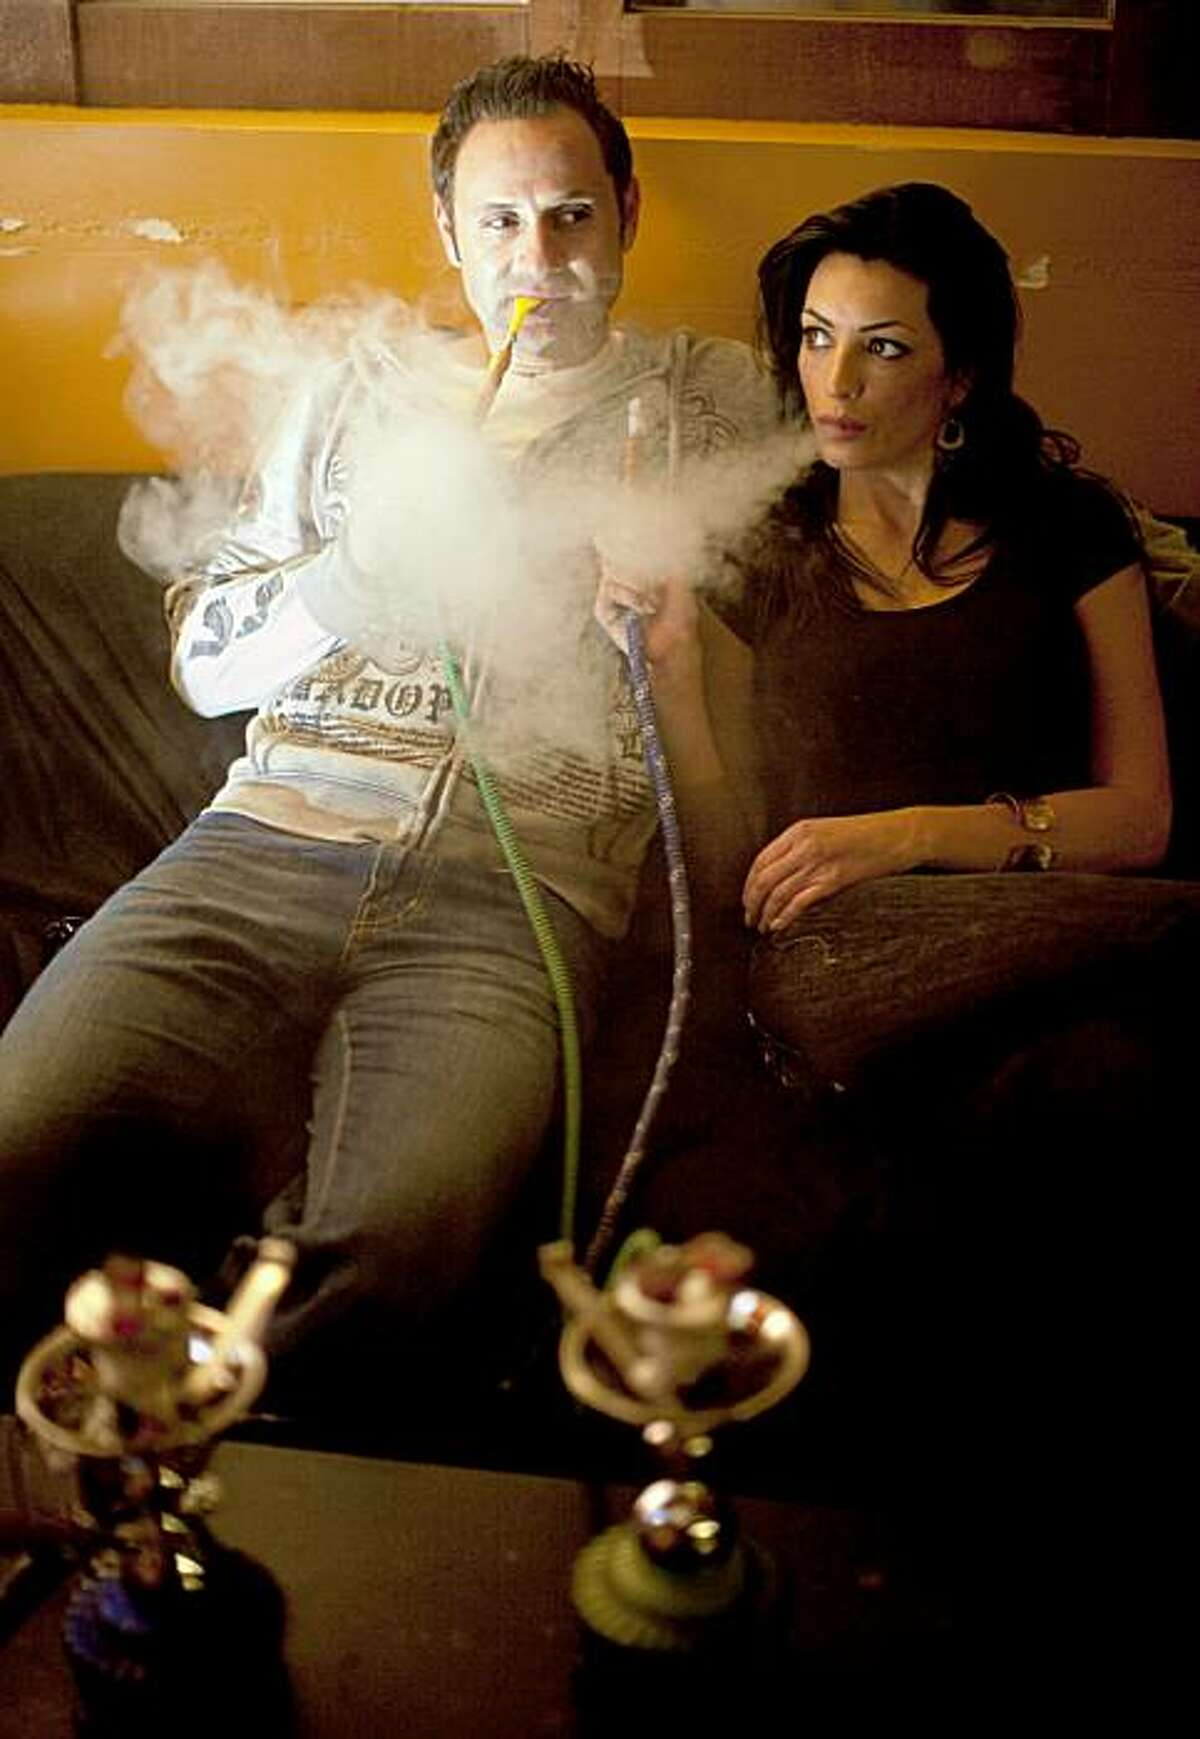 Paul Zumot and his girlfriend, Jennifer Schipsi, smoking hookah pipes at Da Hookah Spot. Zumot was arrested Oct. 19 on suspicion of murdering Schipsi.